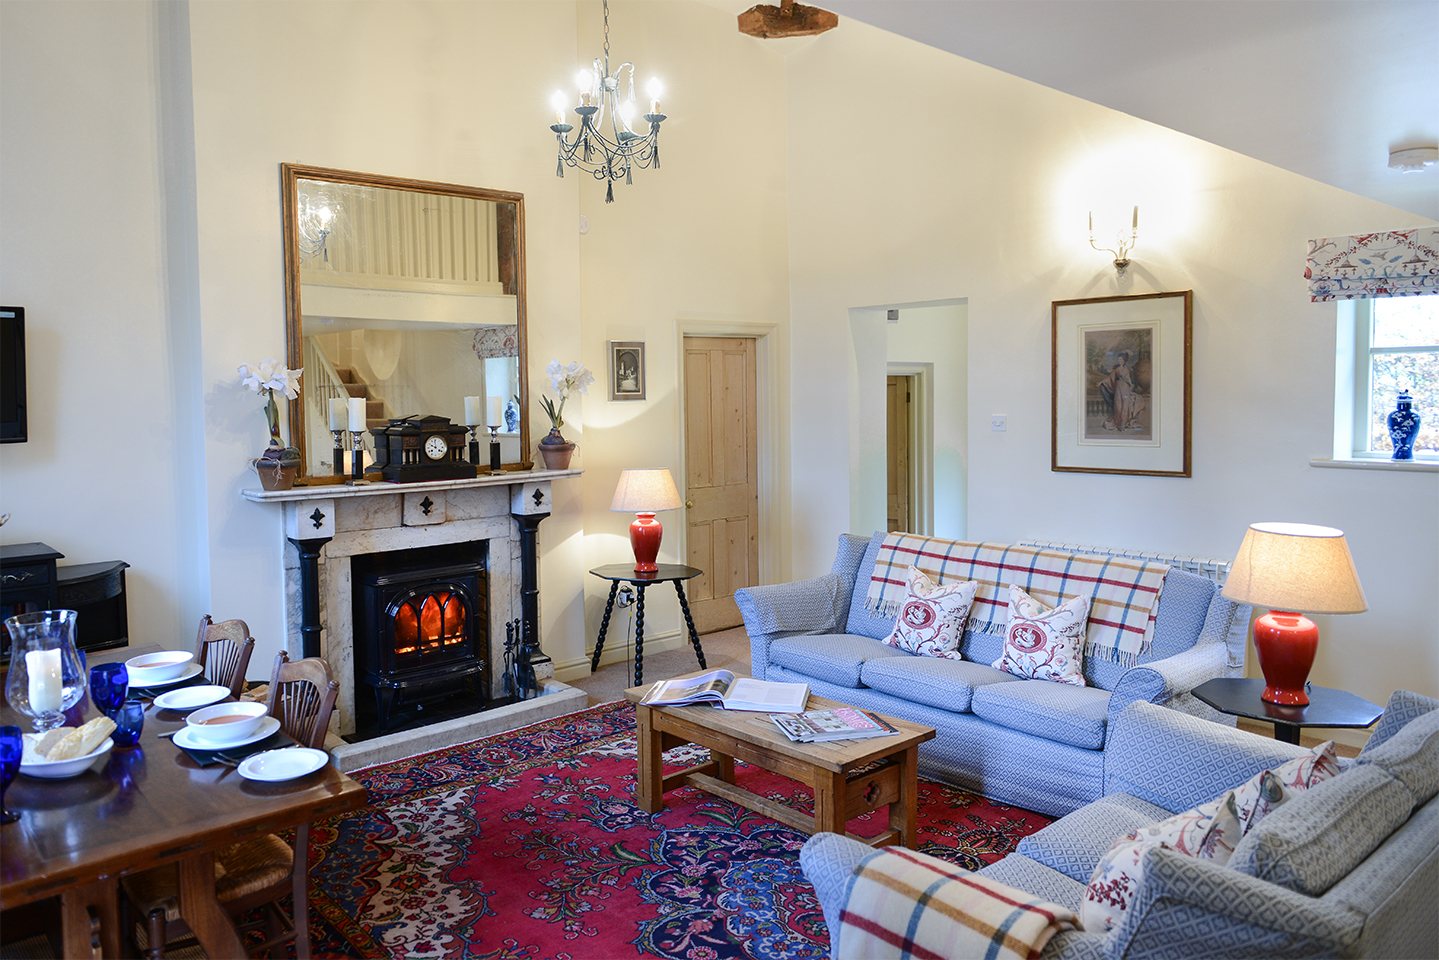 The beautifully light and airy Empress cottage at Combernere Abbey offers contemporary holiday accommodation in Cheshire